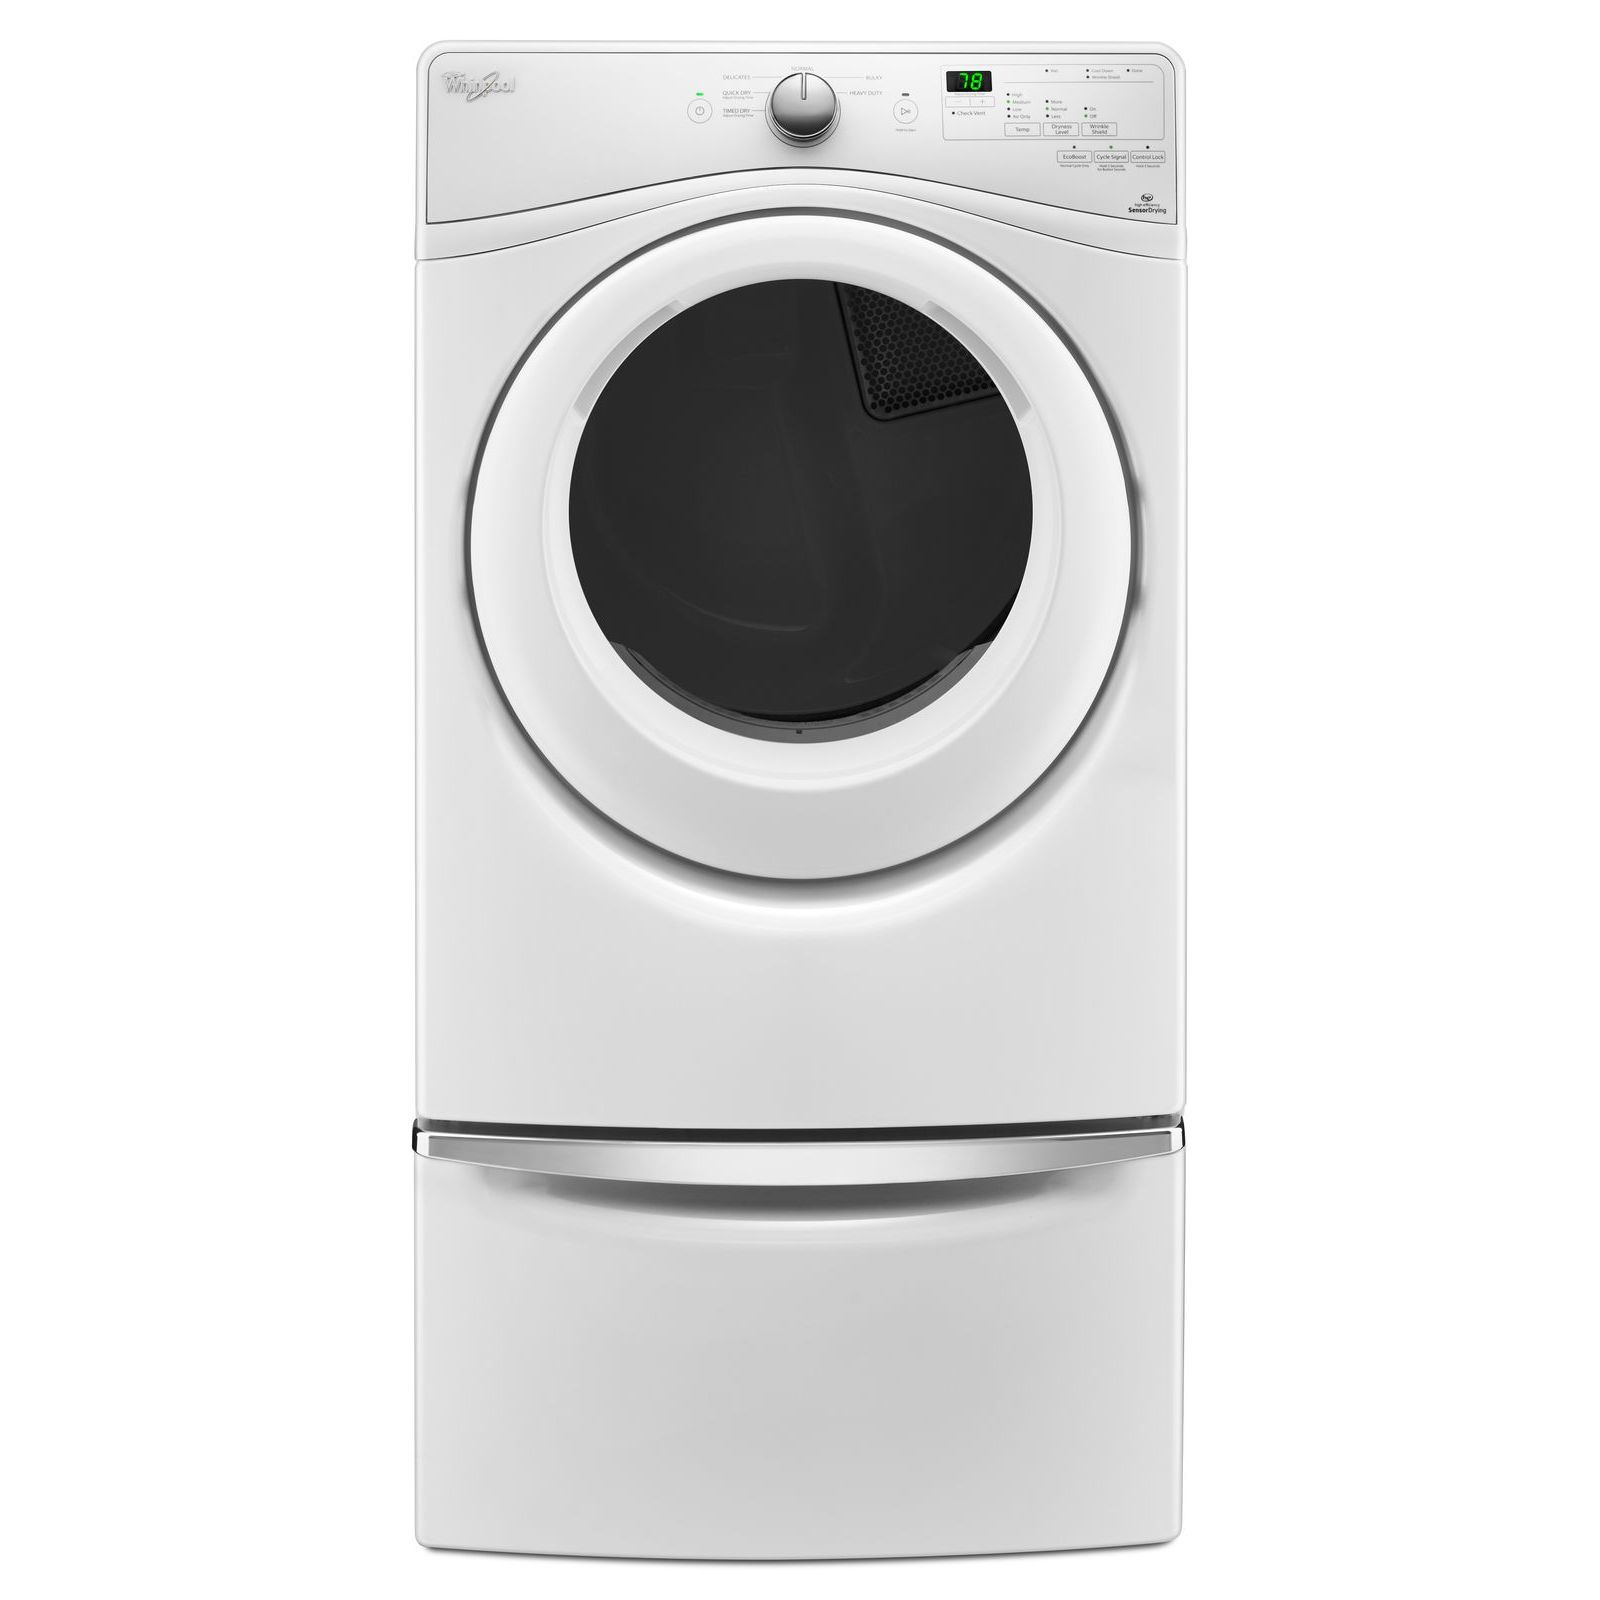 Sears Washer And Dryer Canada Whirlpool Wed75hefw 7 4 Cu Ft Electric Dryer White